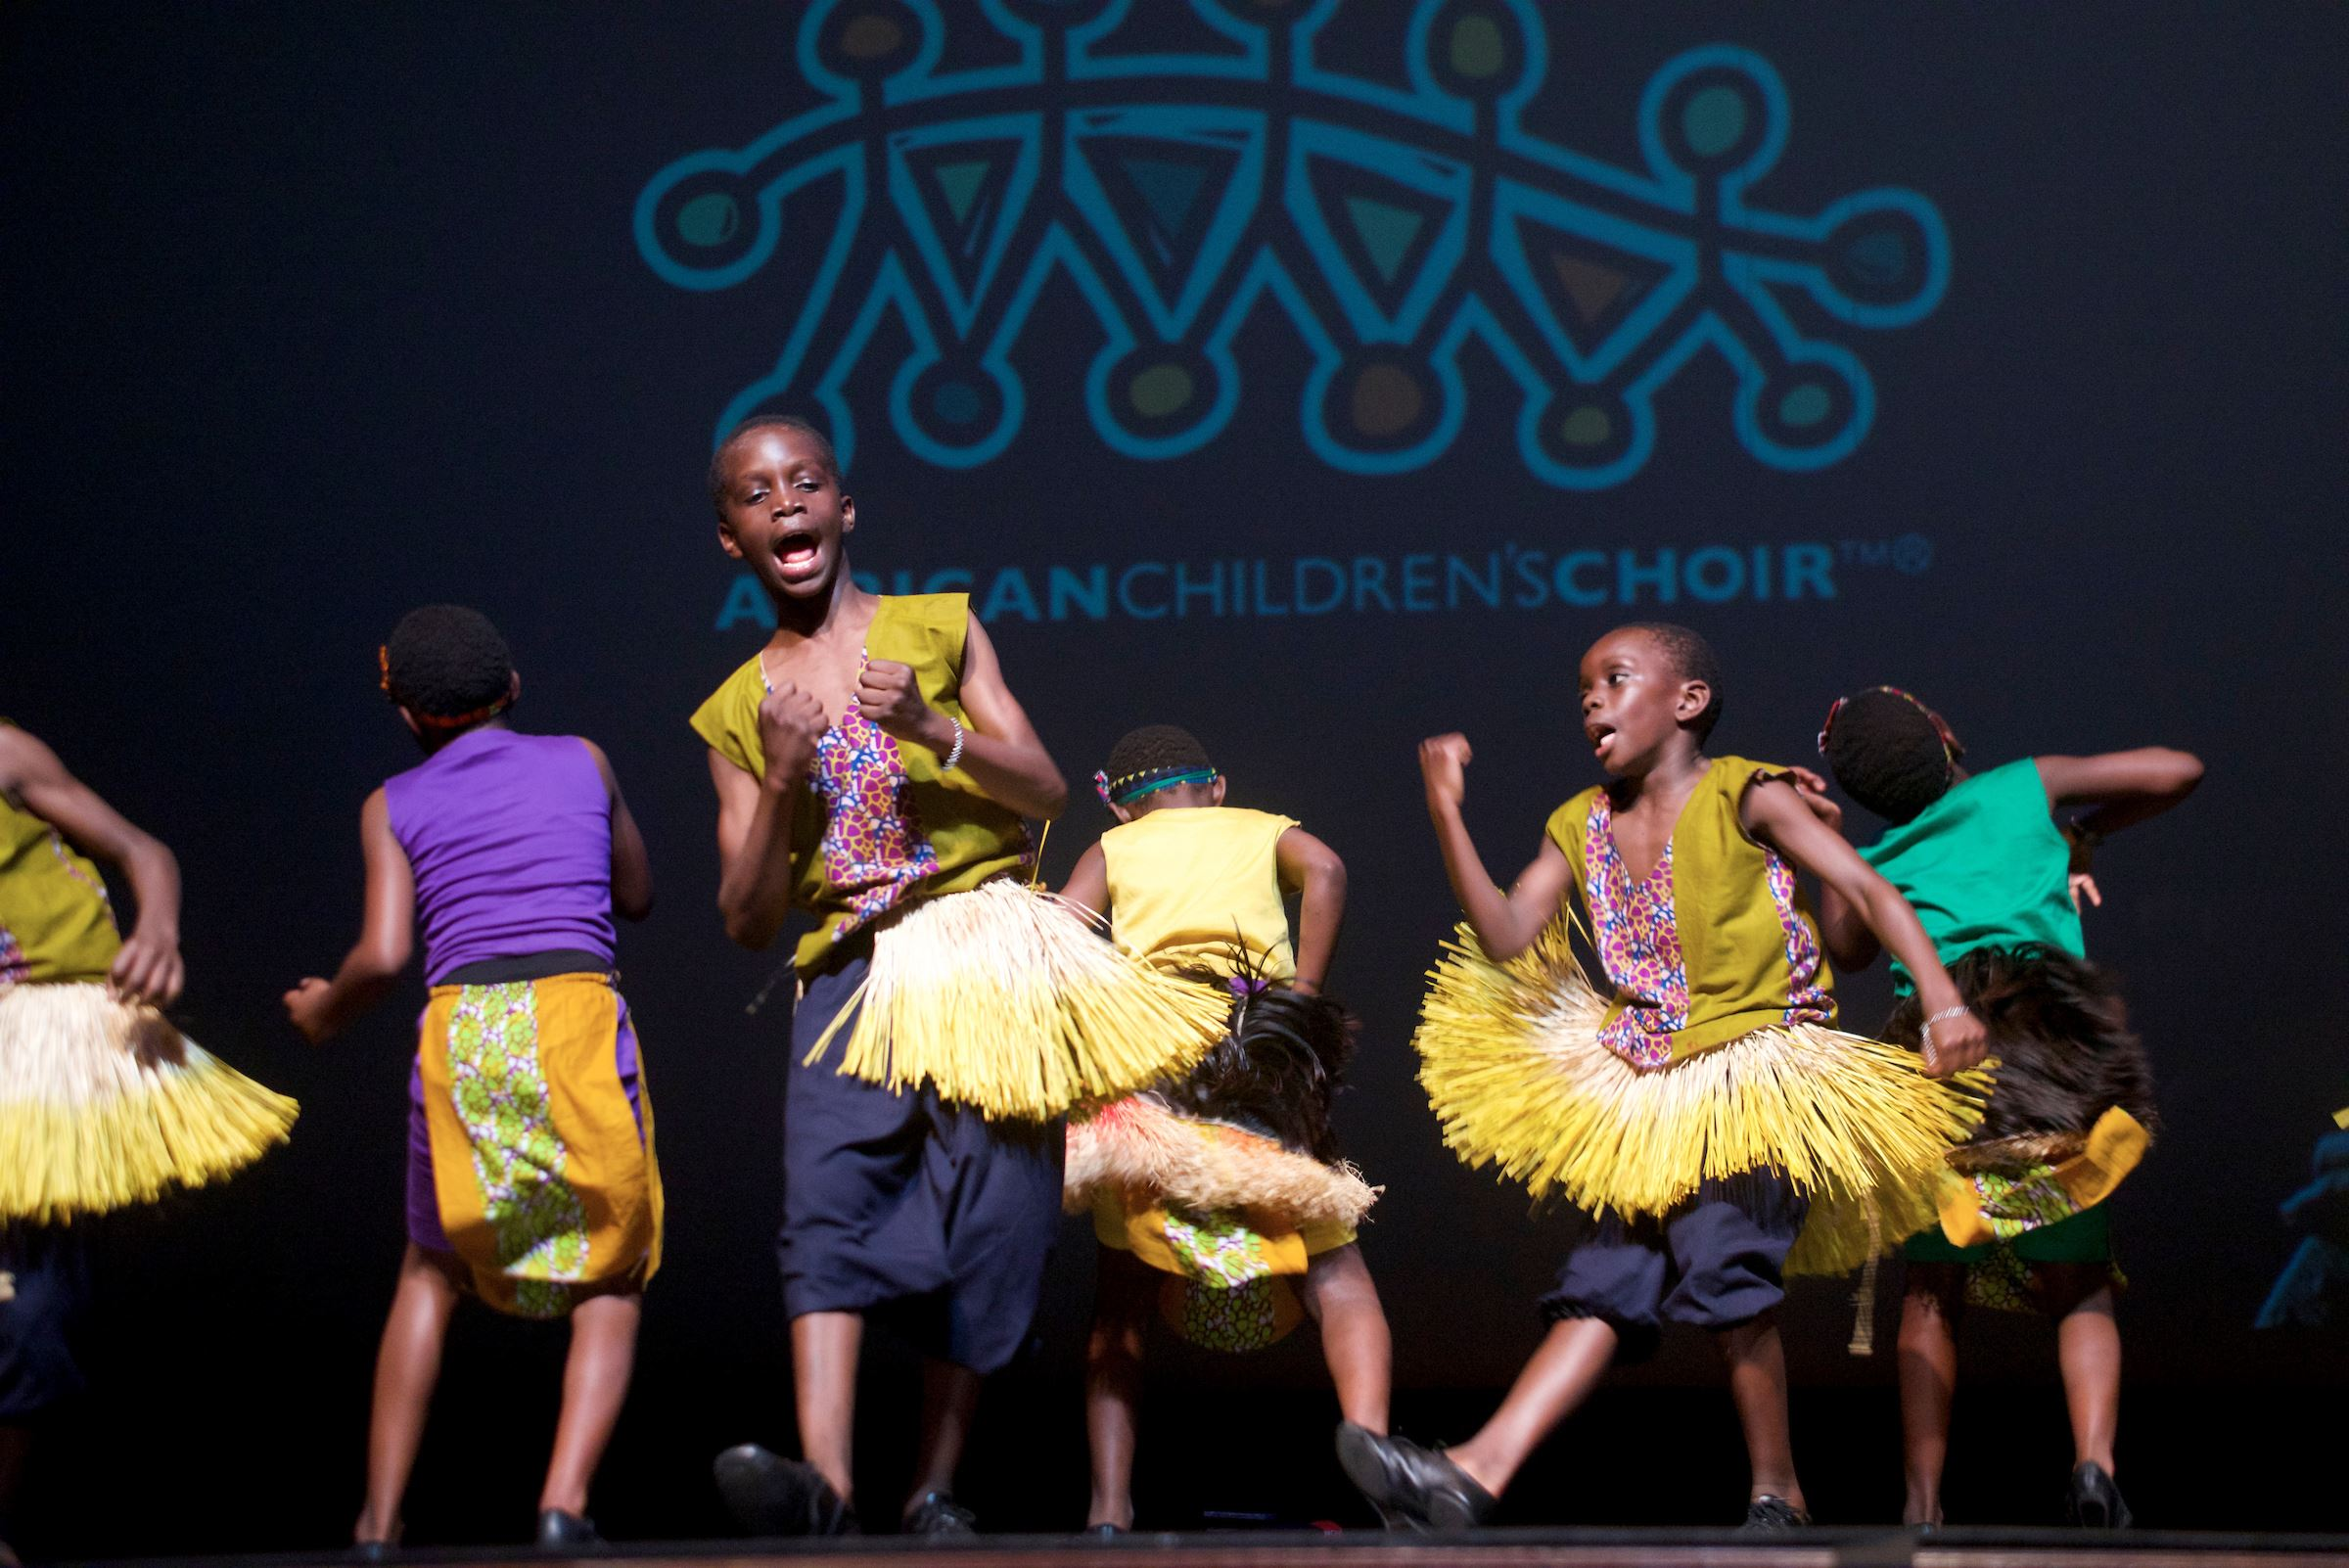 African Childrens Choir  (73)